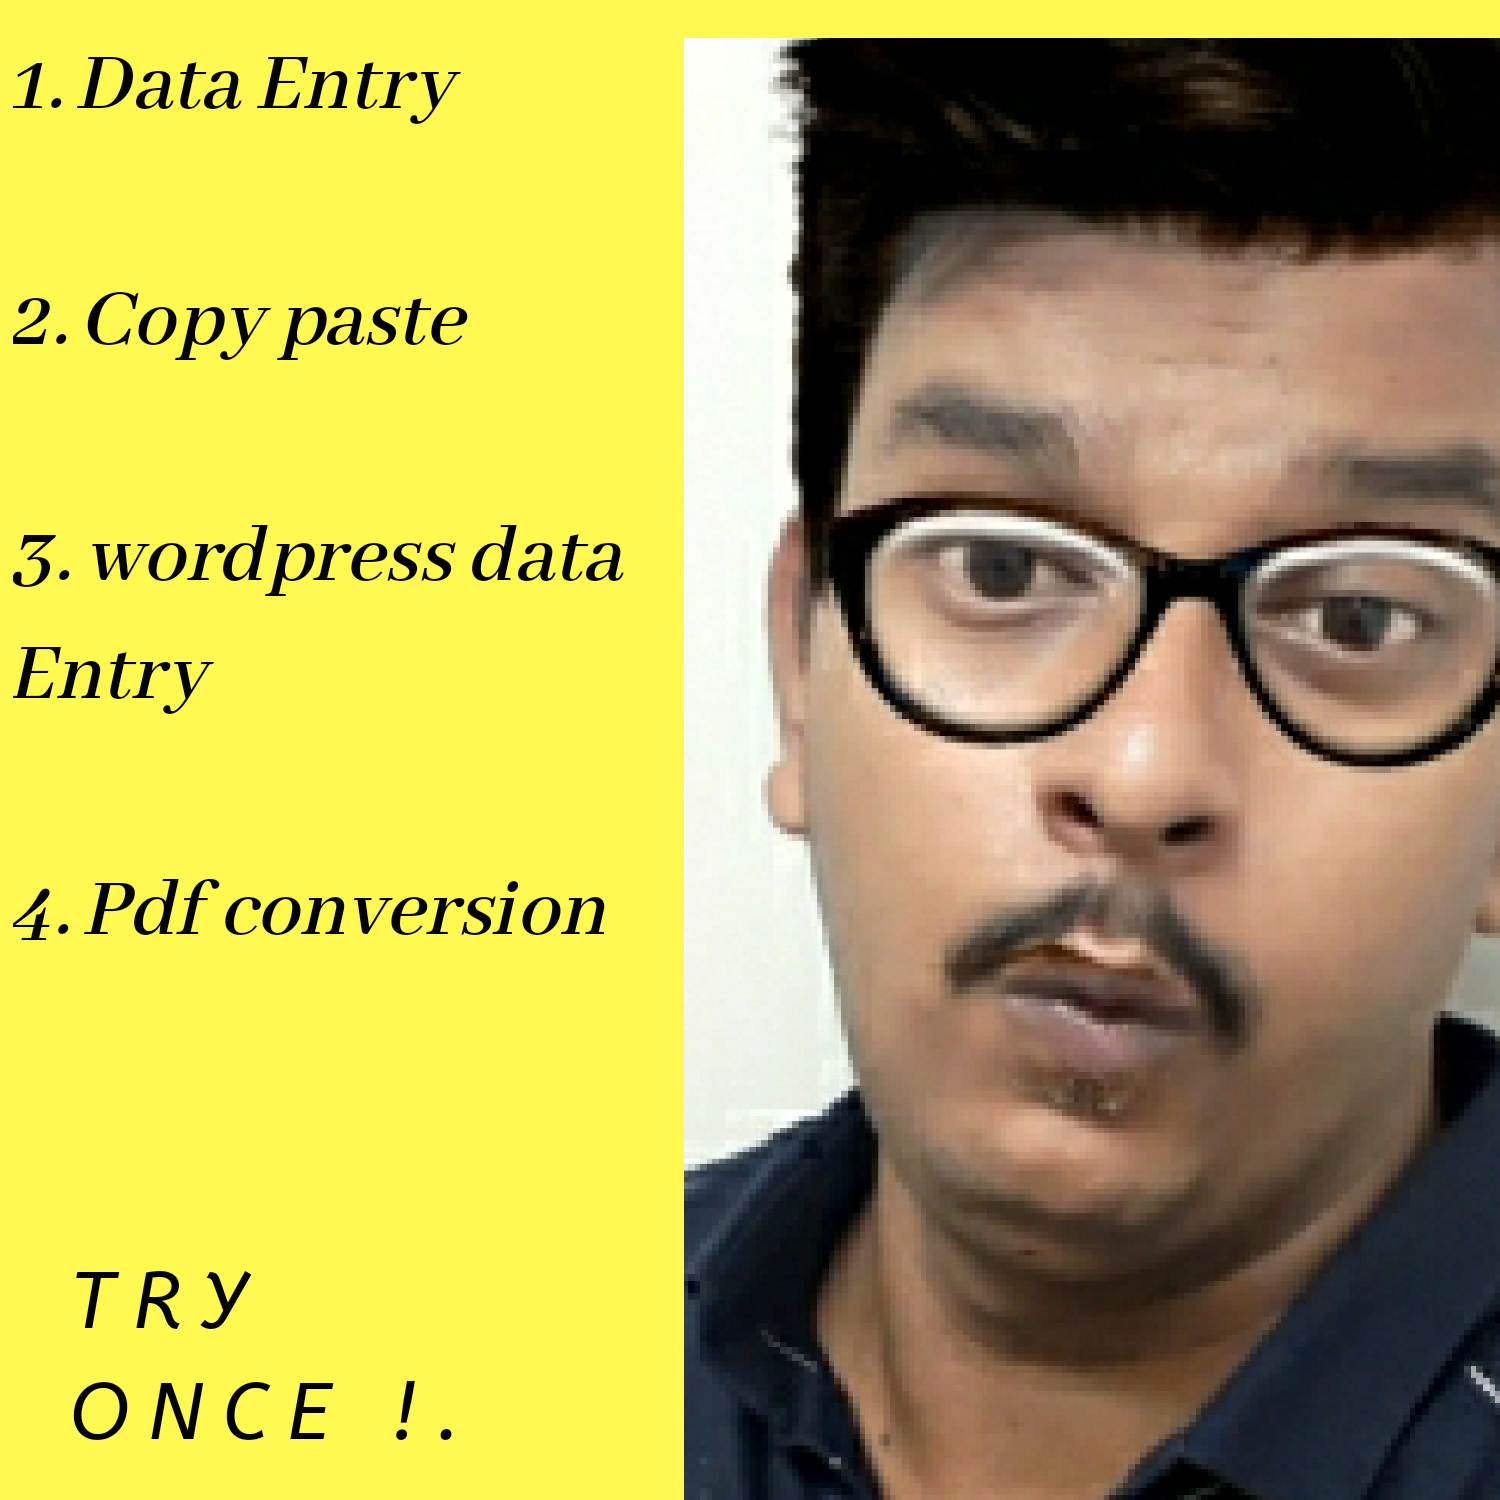 I will do data entry, wordpress data entry, and copy paste